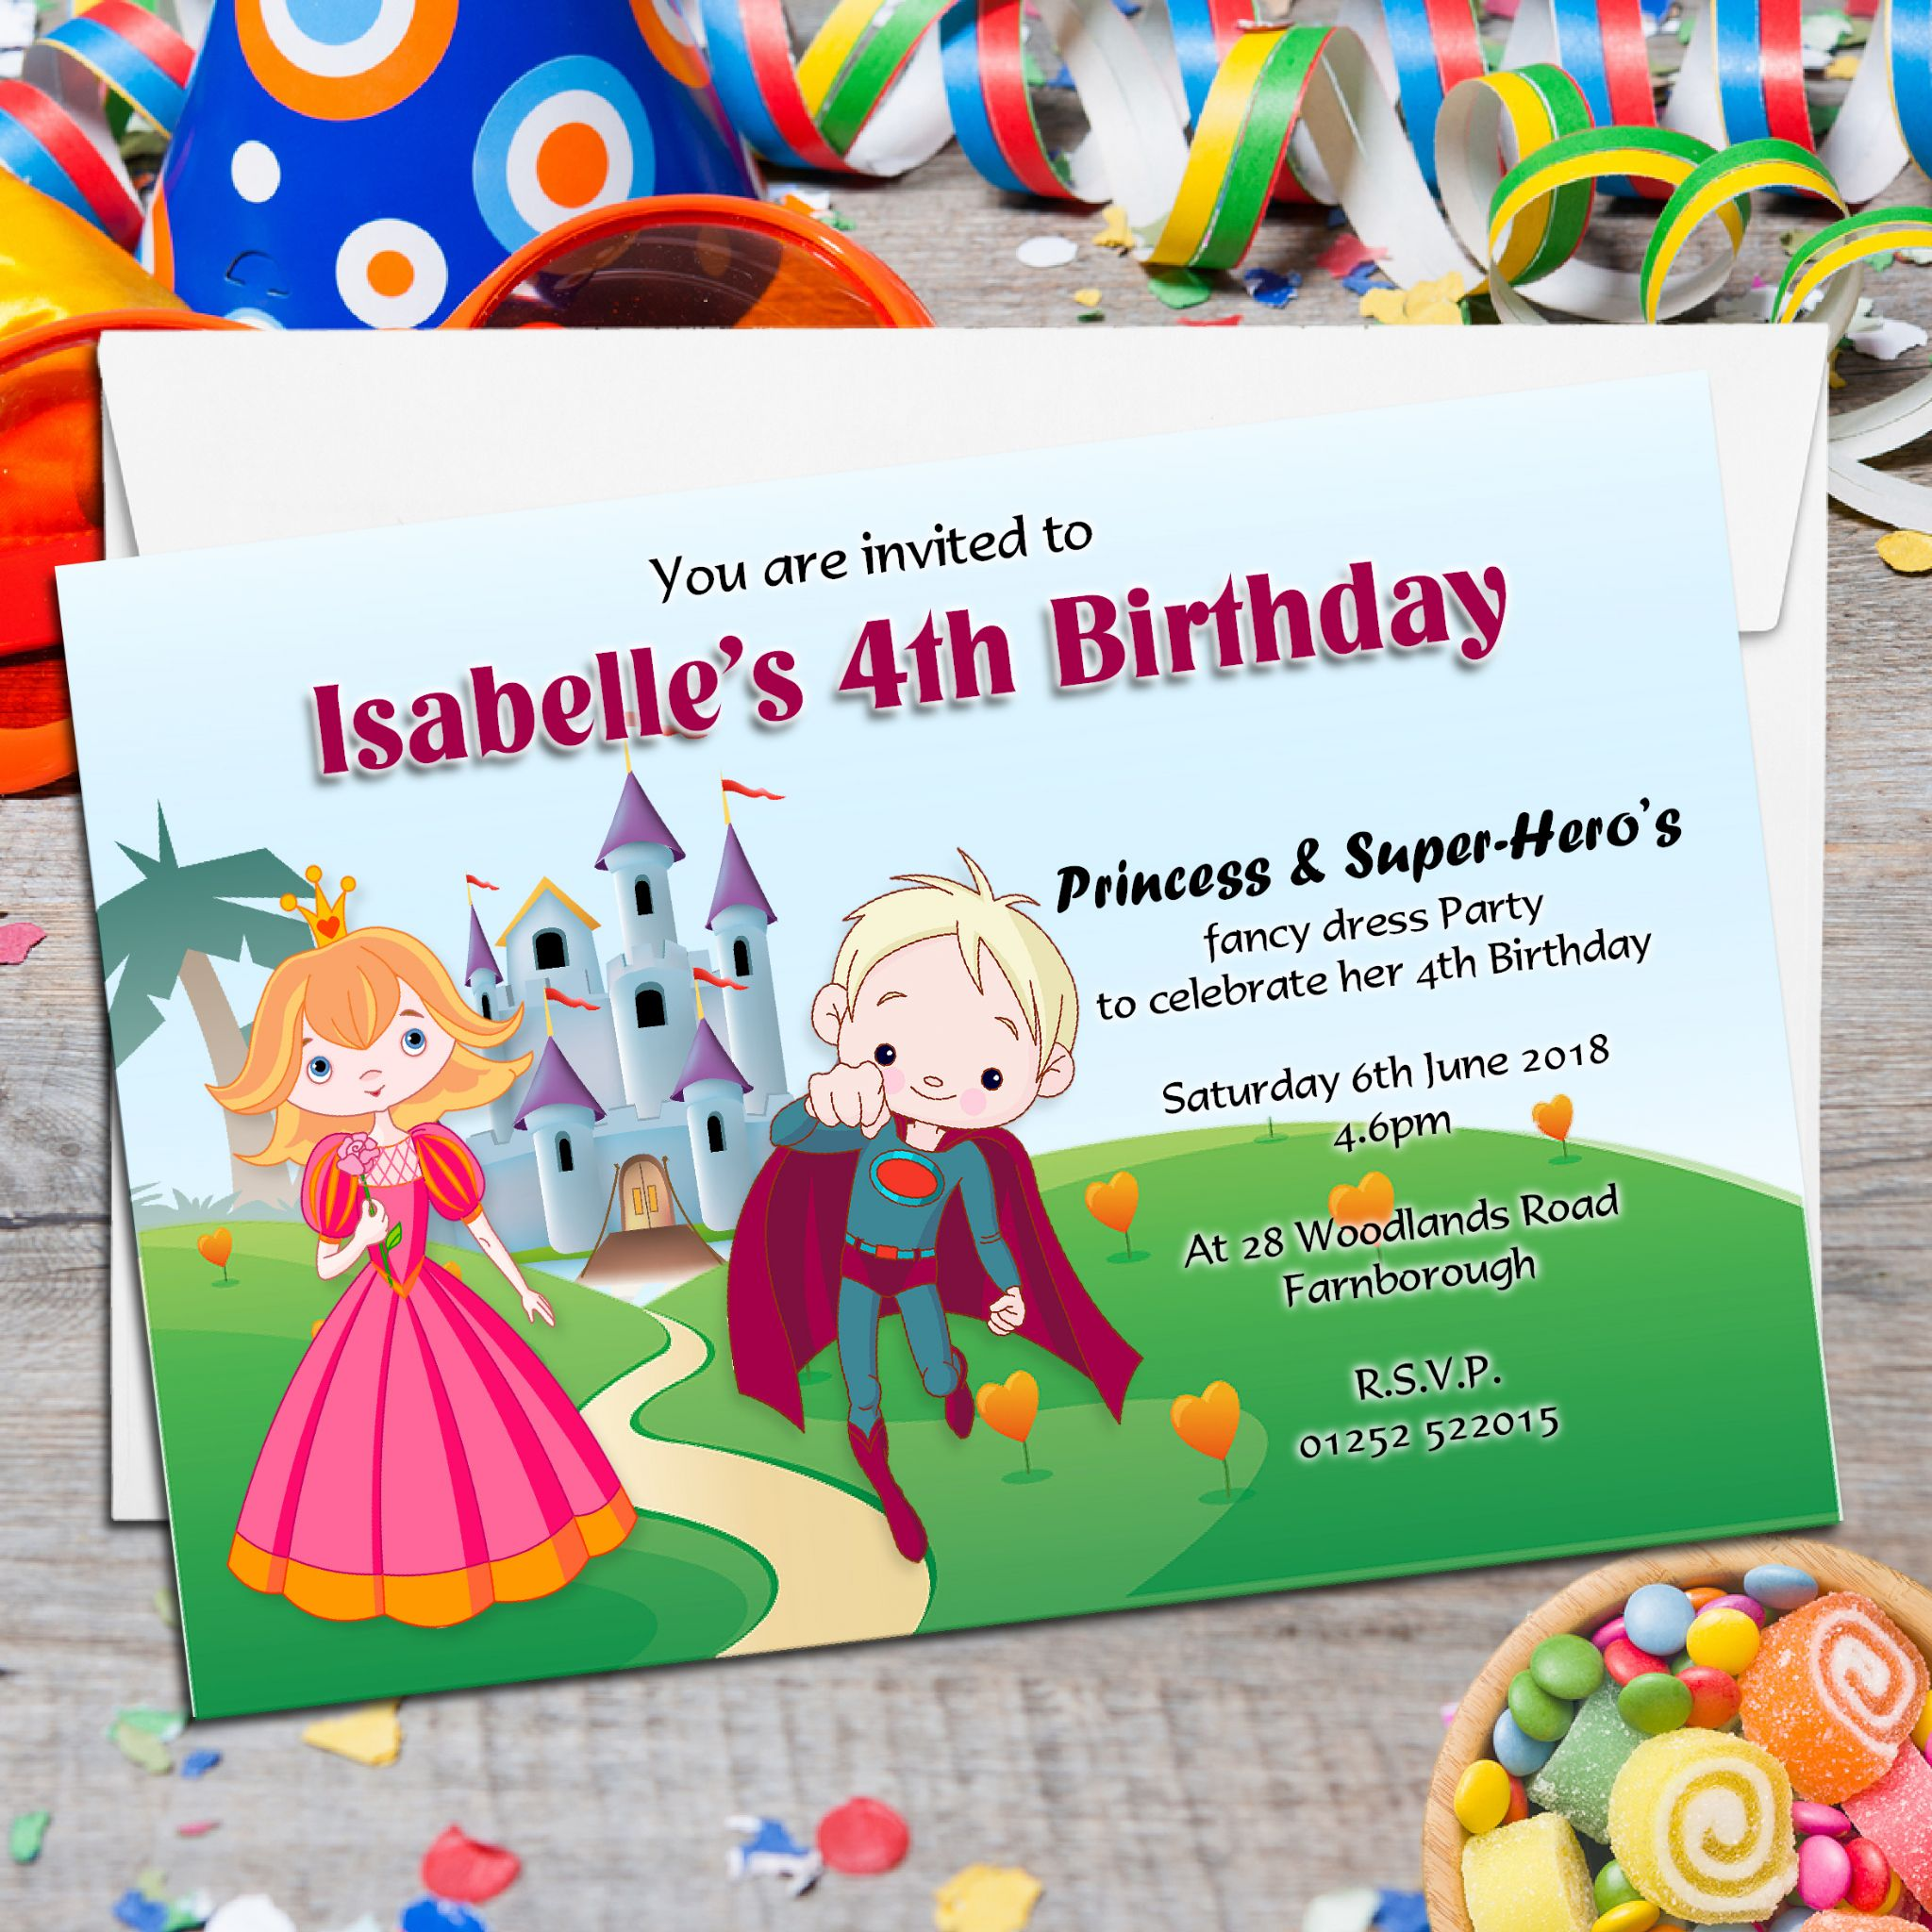 princess and superhero party invites Intoanysearchco